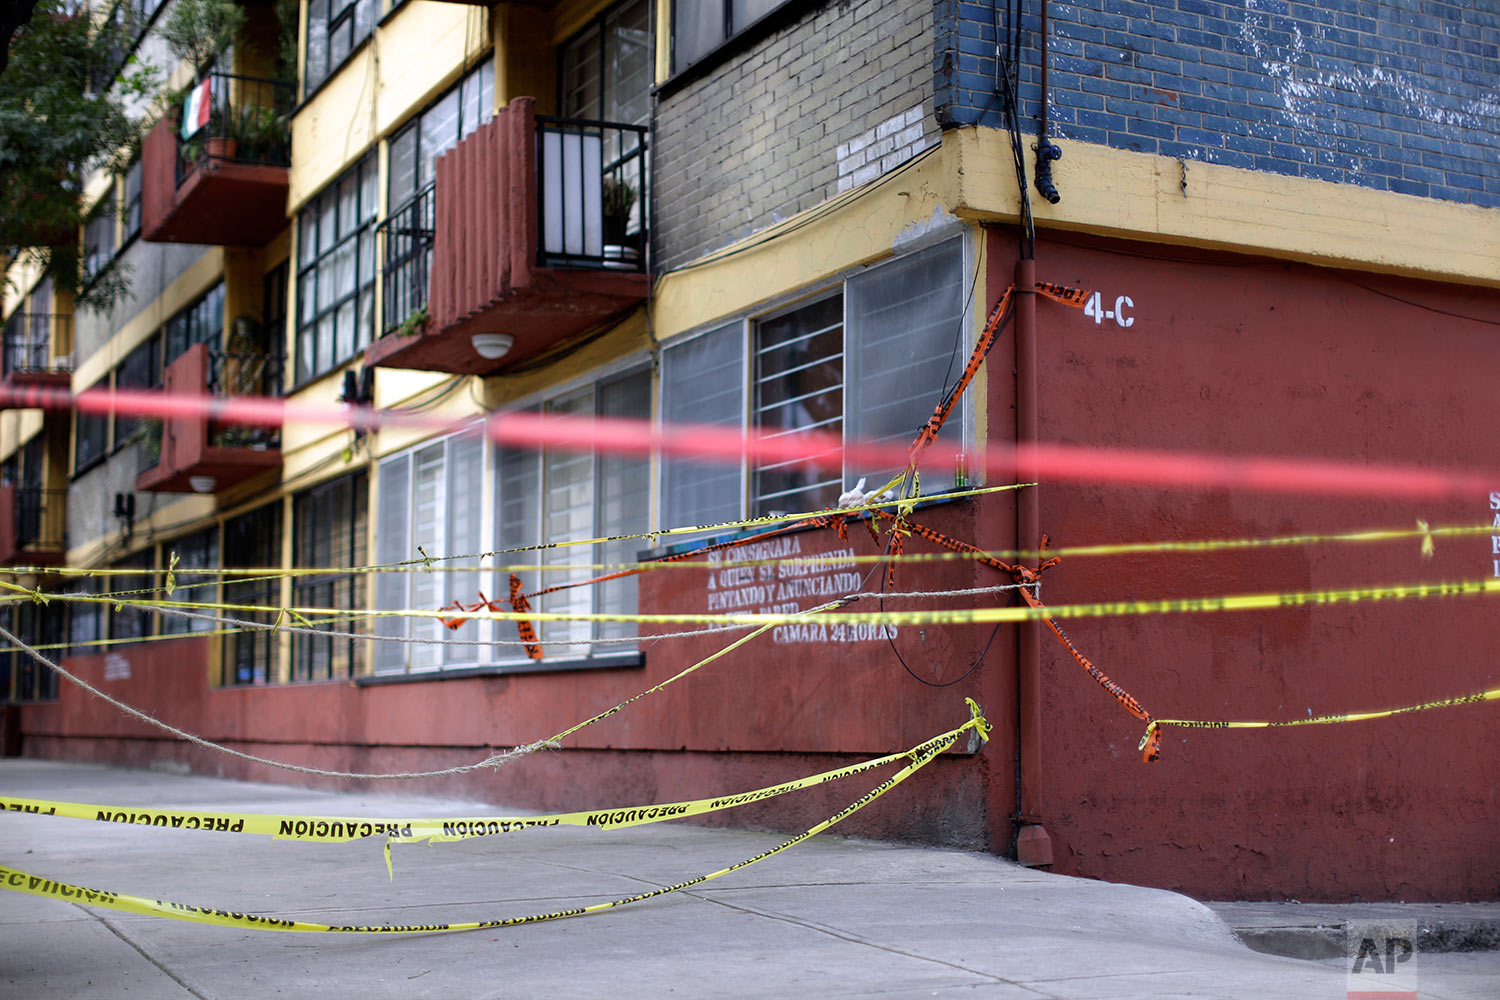 Caution tape blocks a large apartment complex in the southern neighborhood of Tlalpan in Mexico City, Monday, Sept. 25, 2017. (AP Photo/Natacha Pisarenko)